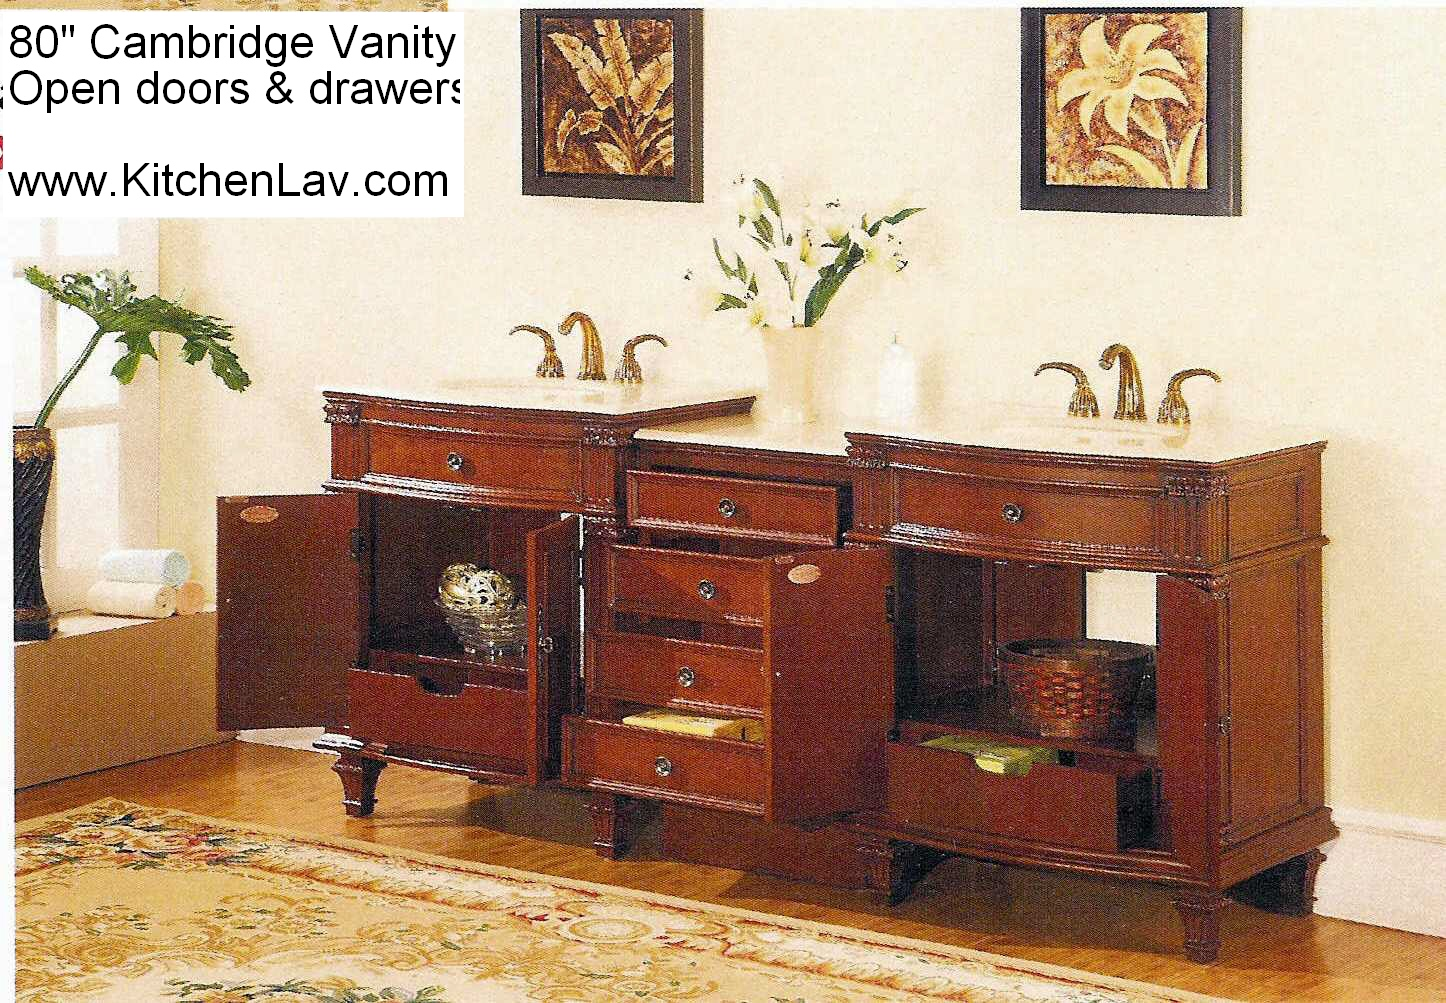 Famous Finland Steam Baths Quincy Thick Best Bathroom Tiles Design Flat Beautiful Bathrooms With Shower Curtains Heated Whirlpool Baths Young Mirror For Bathroom Walls In India YellowBath And Shower Enclosures 80 Inch And Over Vanities   Bathroom Sink Vanities   Double Sink ..